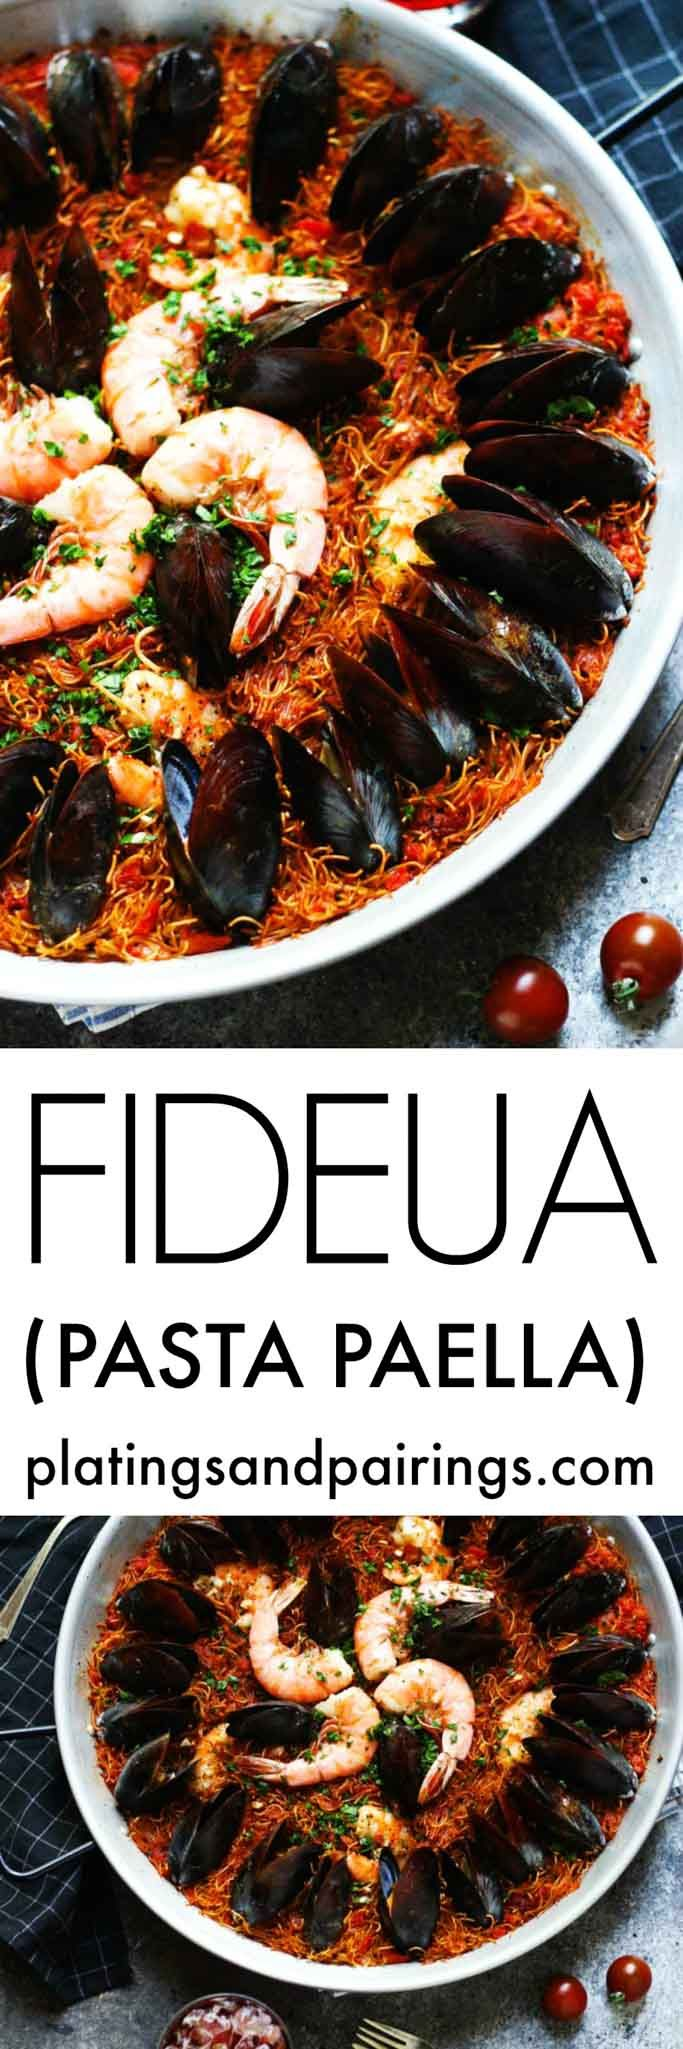 Have you tried Fideuá? It's like Paella, but made with broken pasta instead of rice. A Catalan specialty! | platingsandpairings.com